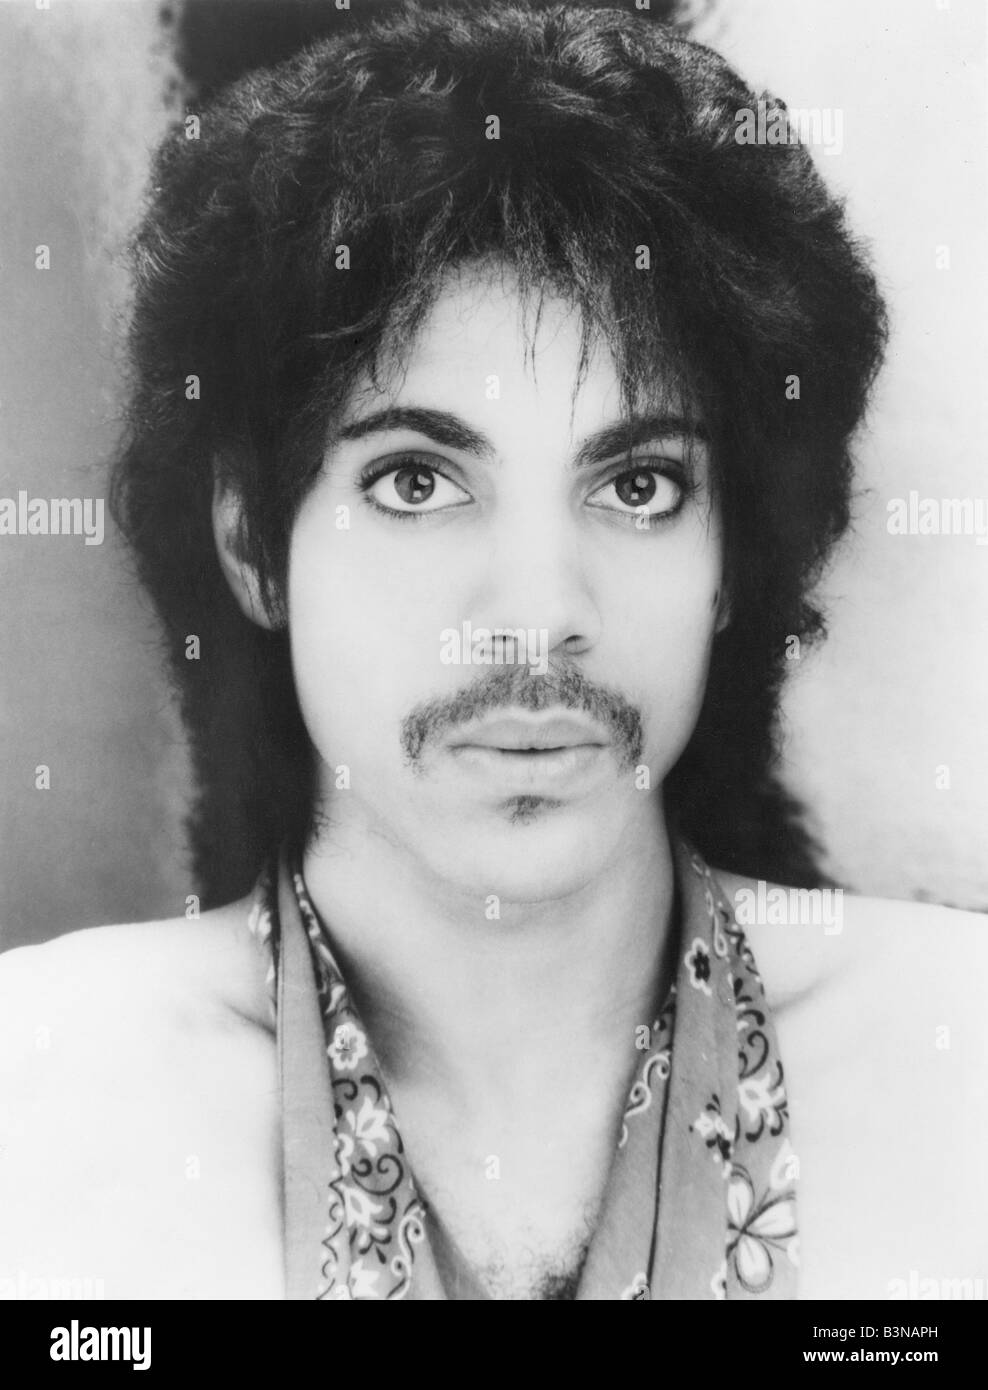 PRINCE US musician in 1981 - Stock Image